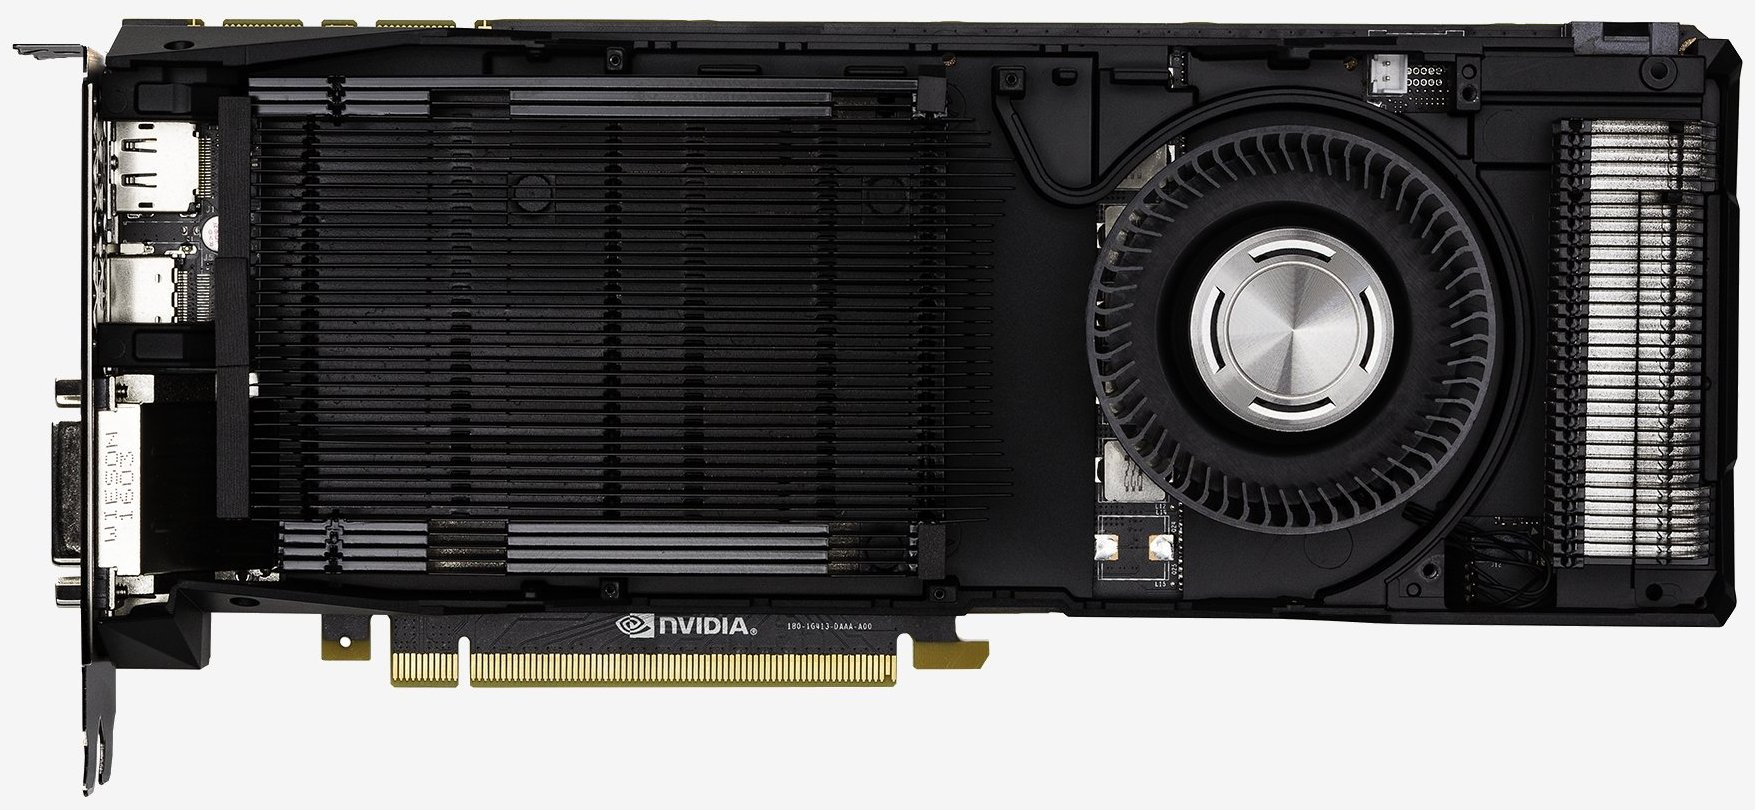 Nvidia GeForce GTX 1080 Review > GTX 1080 Founders Edition